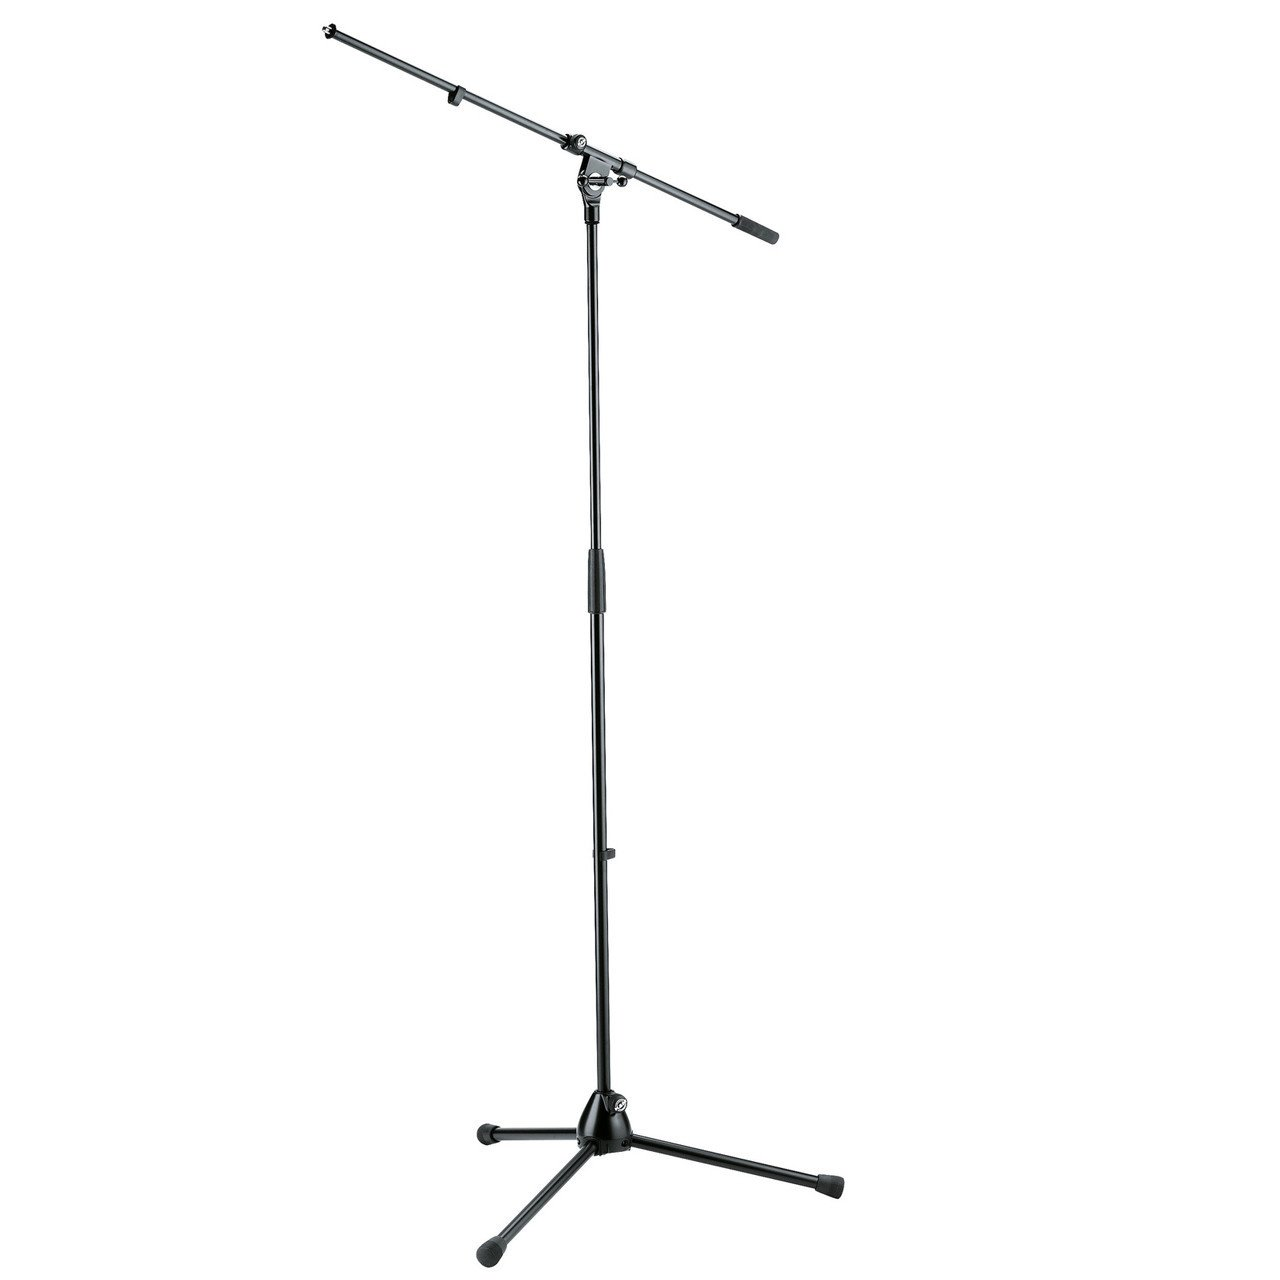 Microphone Accessories - Konig & Meyer 210/2 Heavy Duty Microphone Boom Stand (Black)